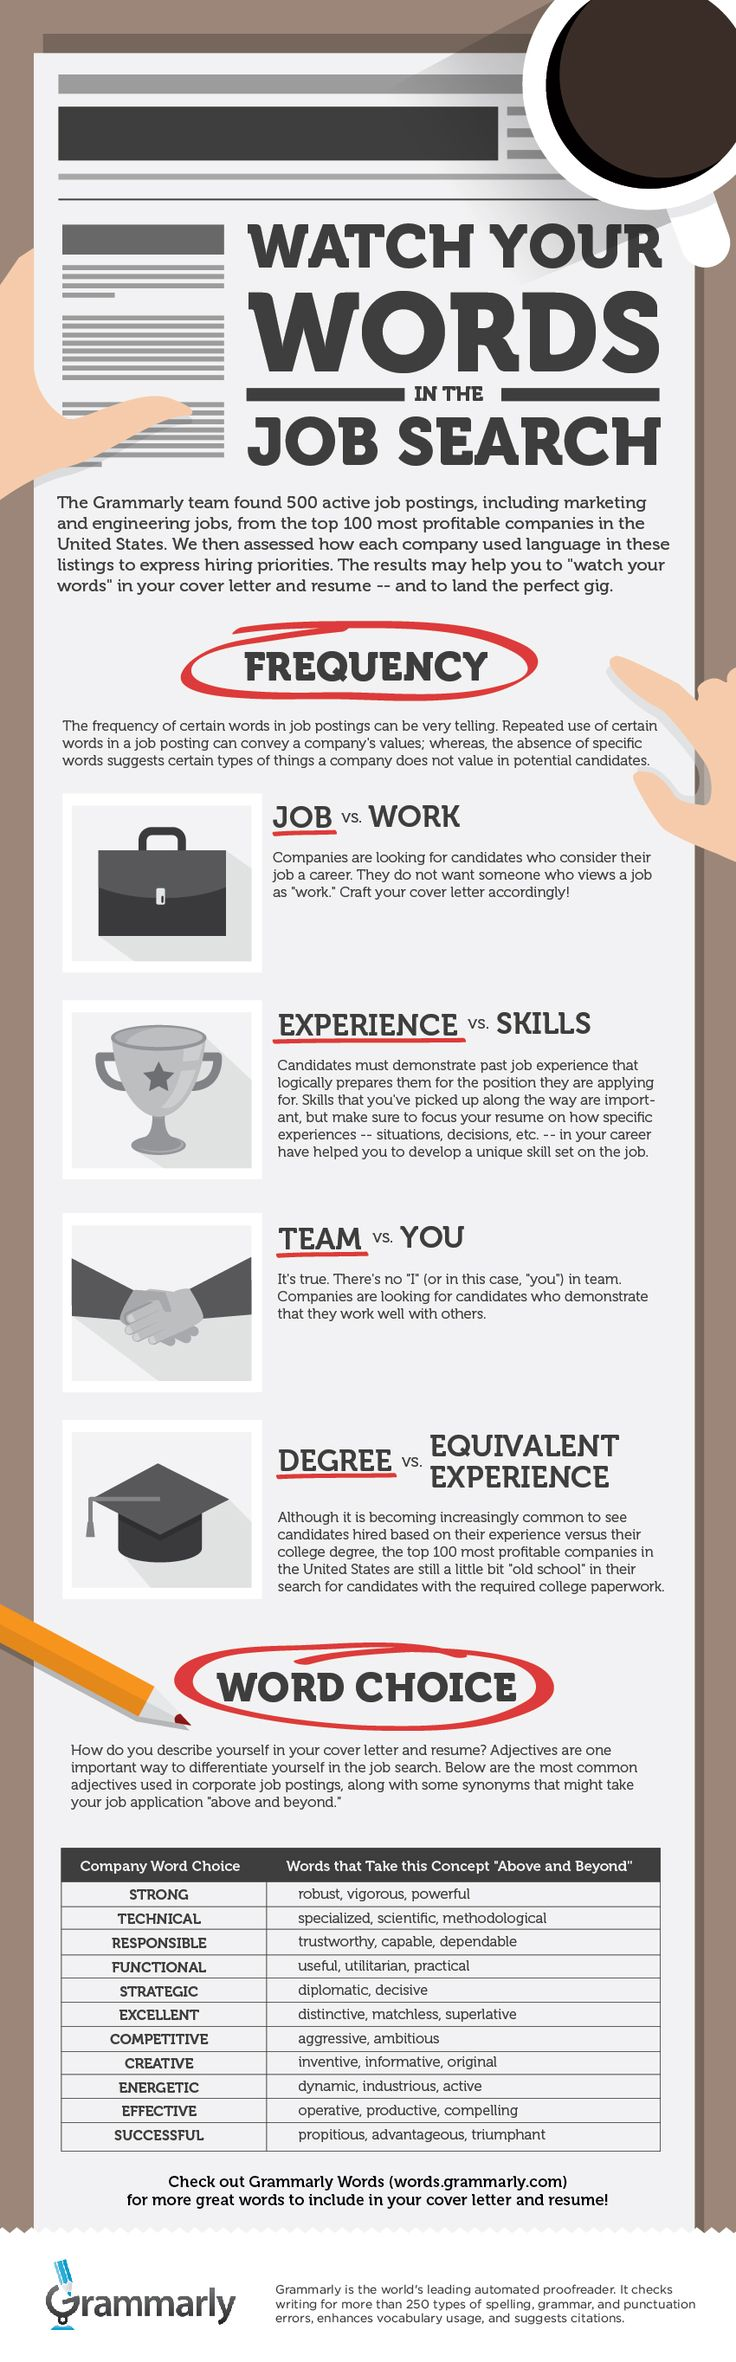 """""""How Your Word Choice Affects Your Job Search"""" (Pinning here because I don't really have another good spot. But I'm thinking of making a job hunting board after seeing a lot of great related graphics.)"""